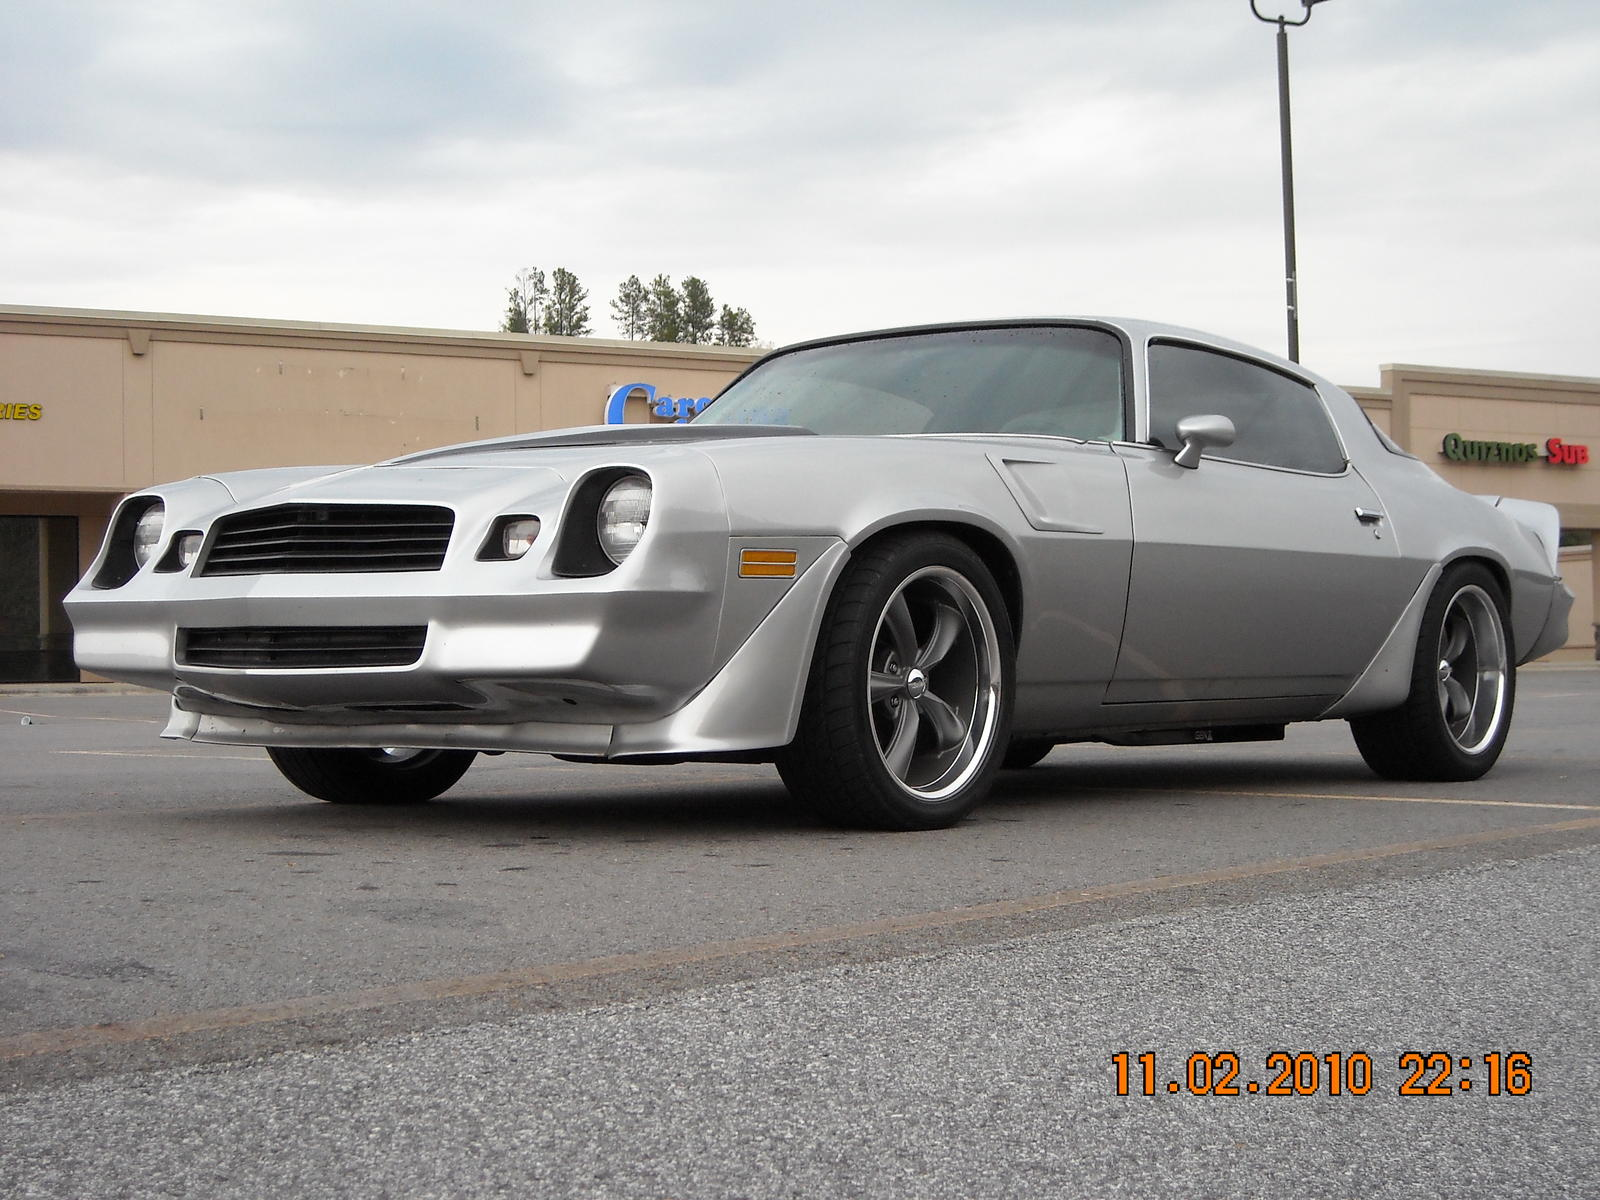 Attachment as well A Cbe C D B Ab E Zps Ca D likewise Aa also Clam also . on 1979 camaro subframe